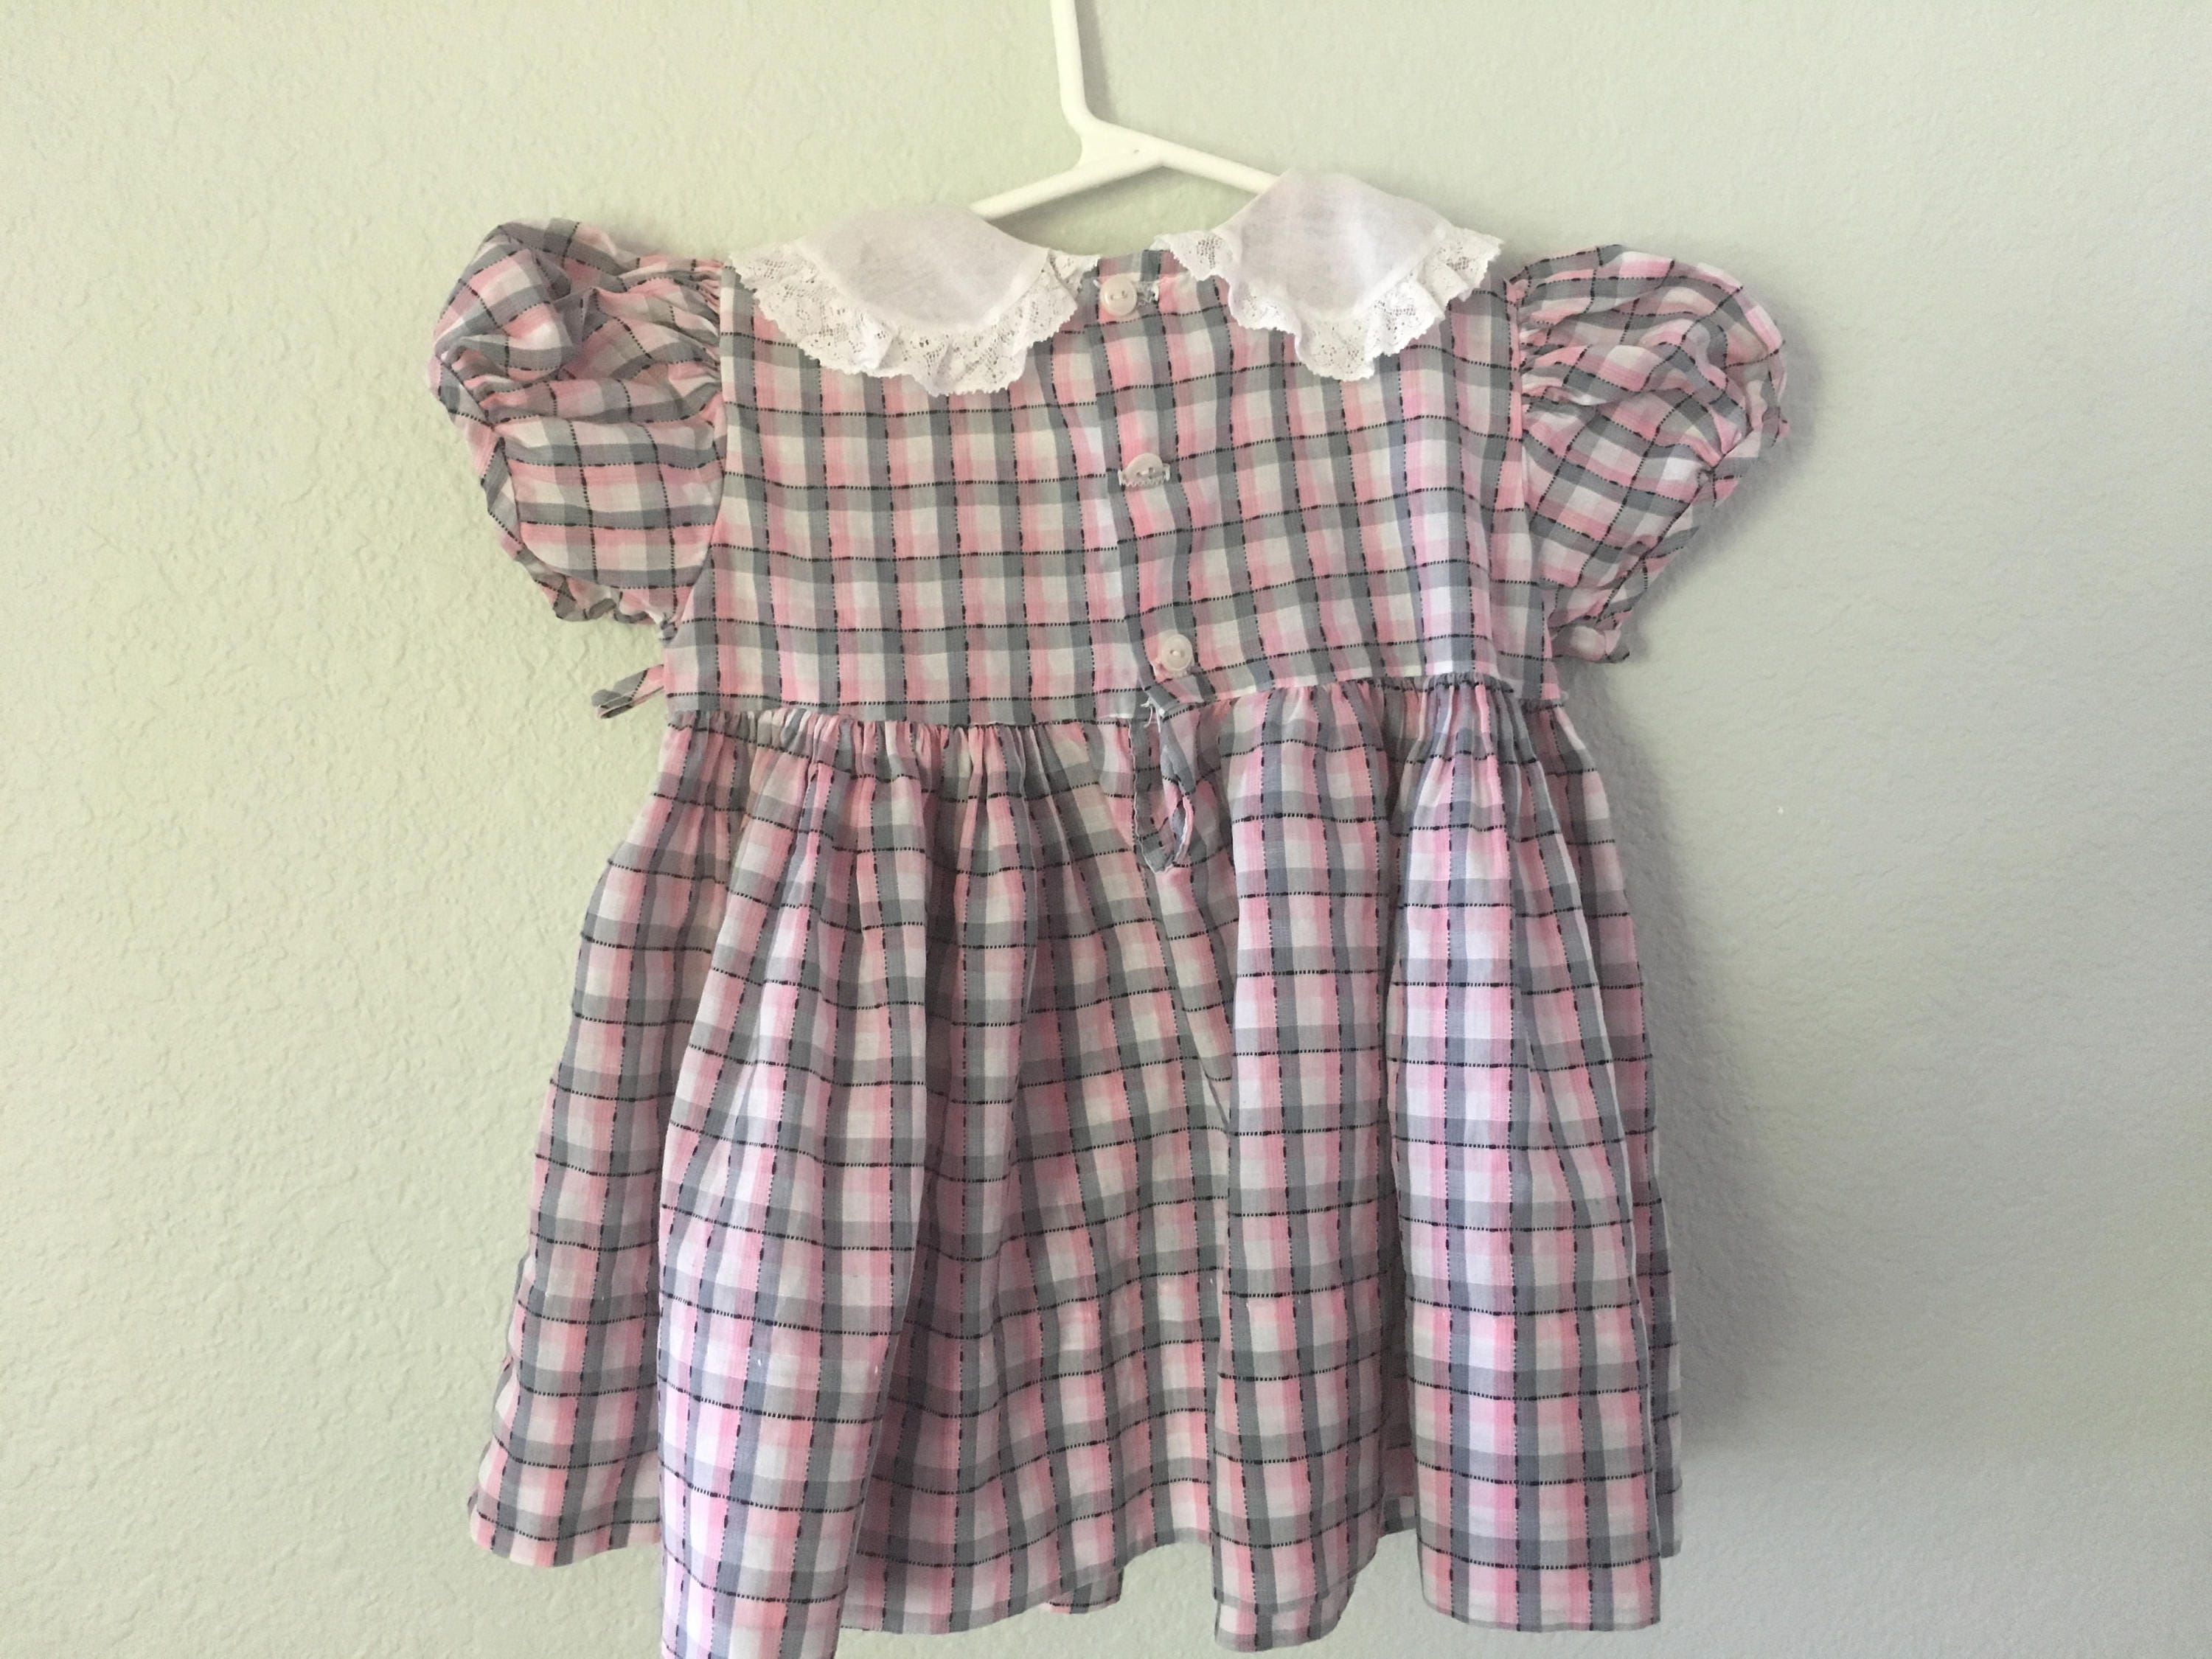 Vintage toddler dress 50s baby dress pink and gray dress Peter